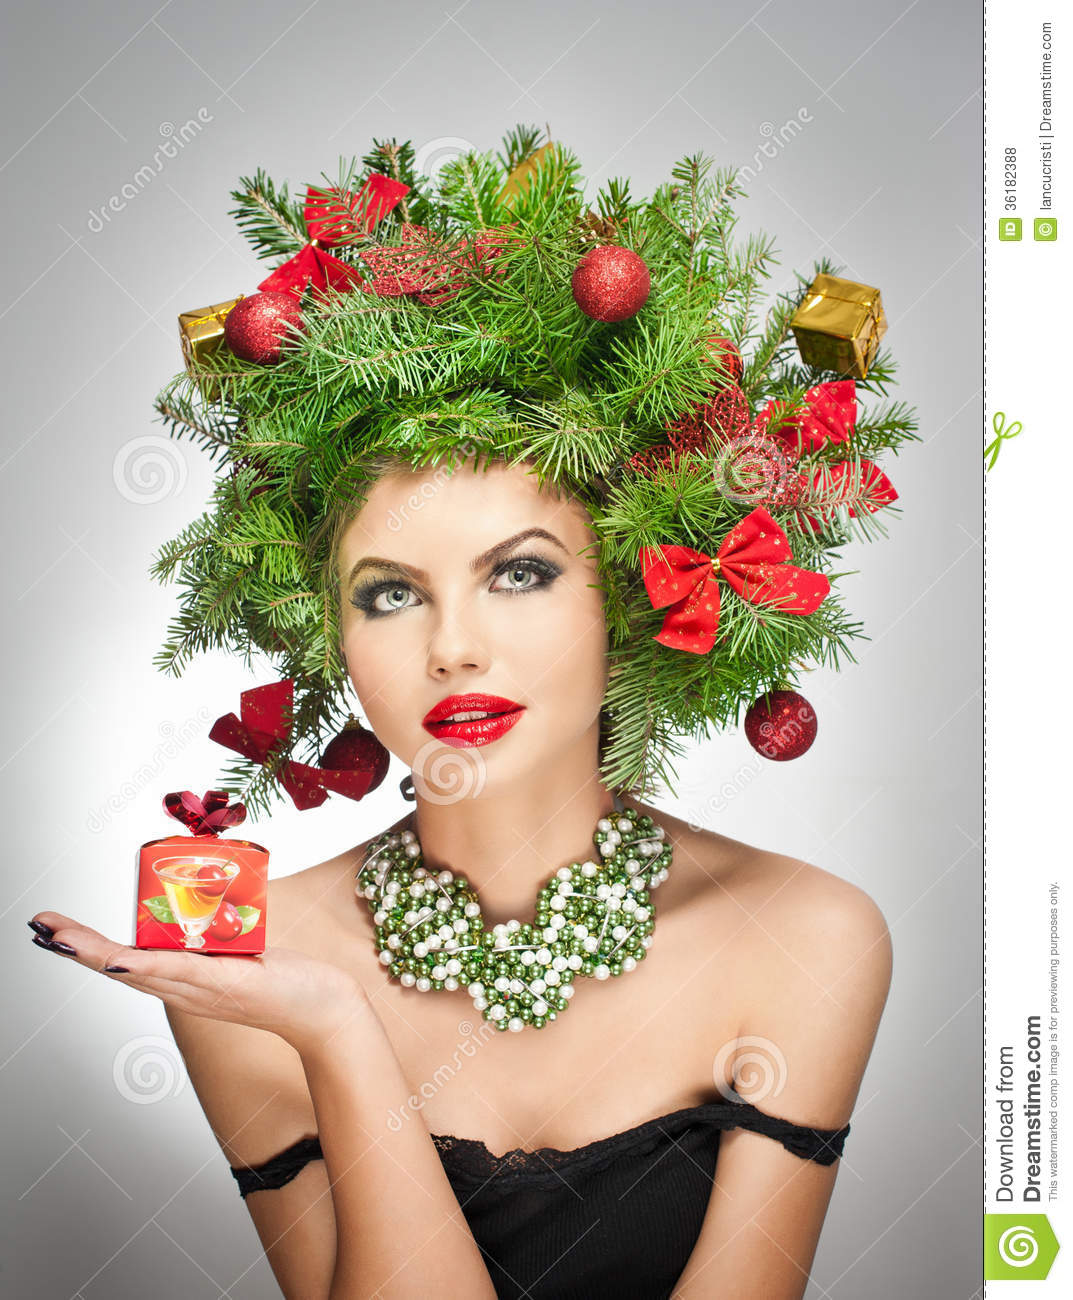 Beautiful Creative Xmas Makeup And Hair Style Indoor Shoot